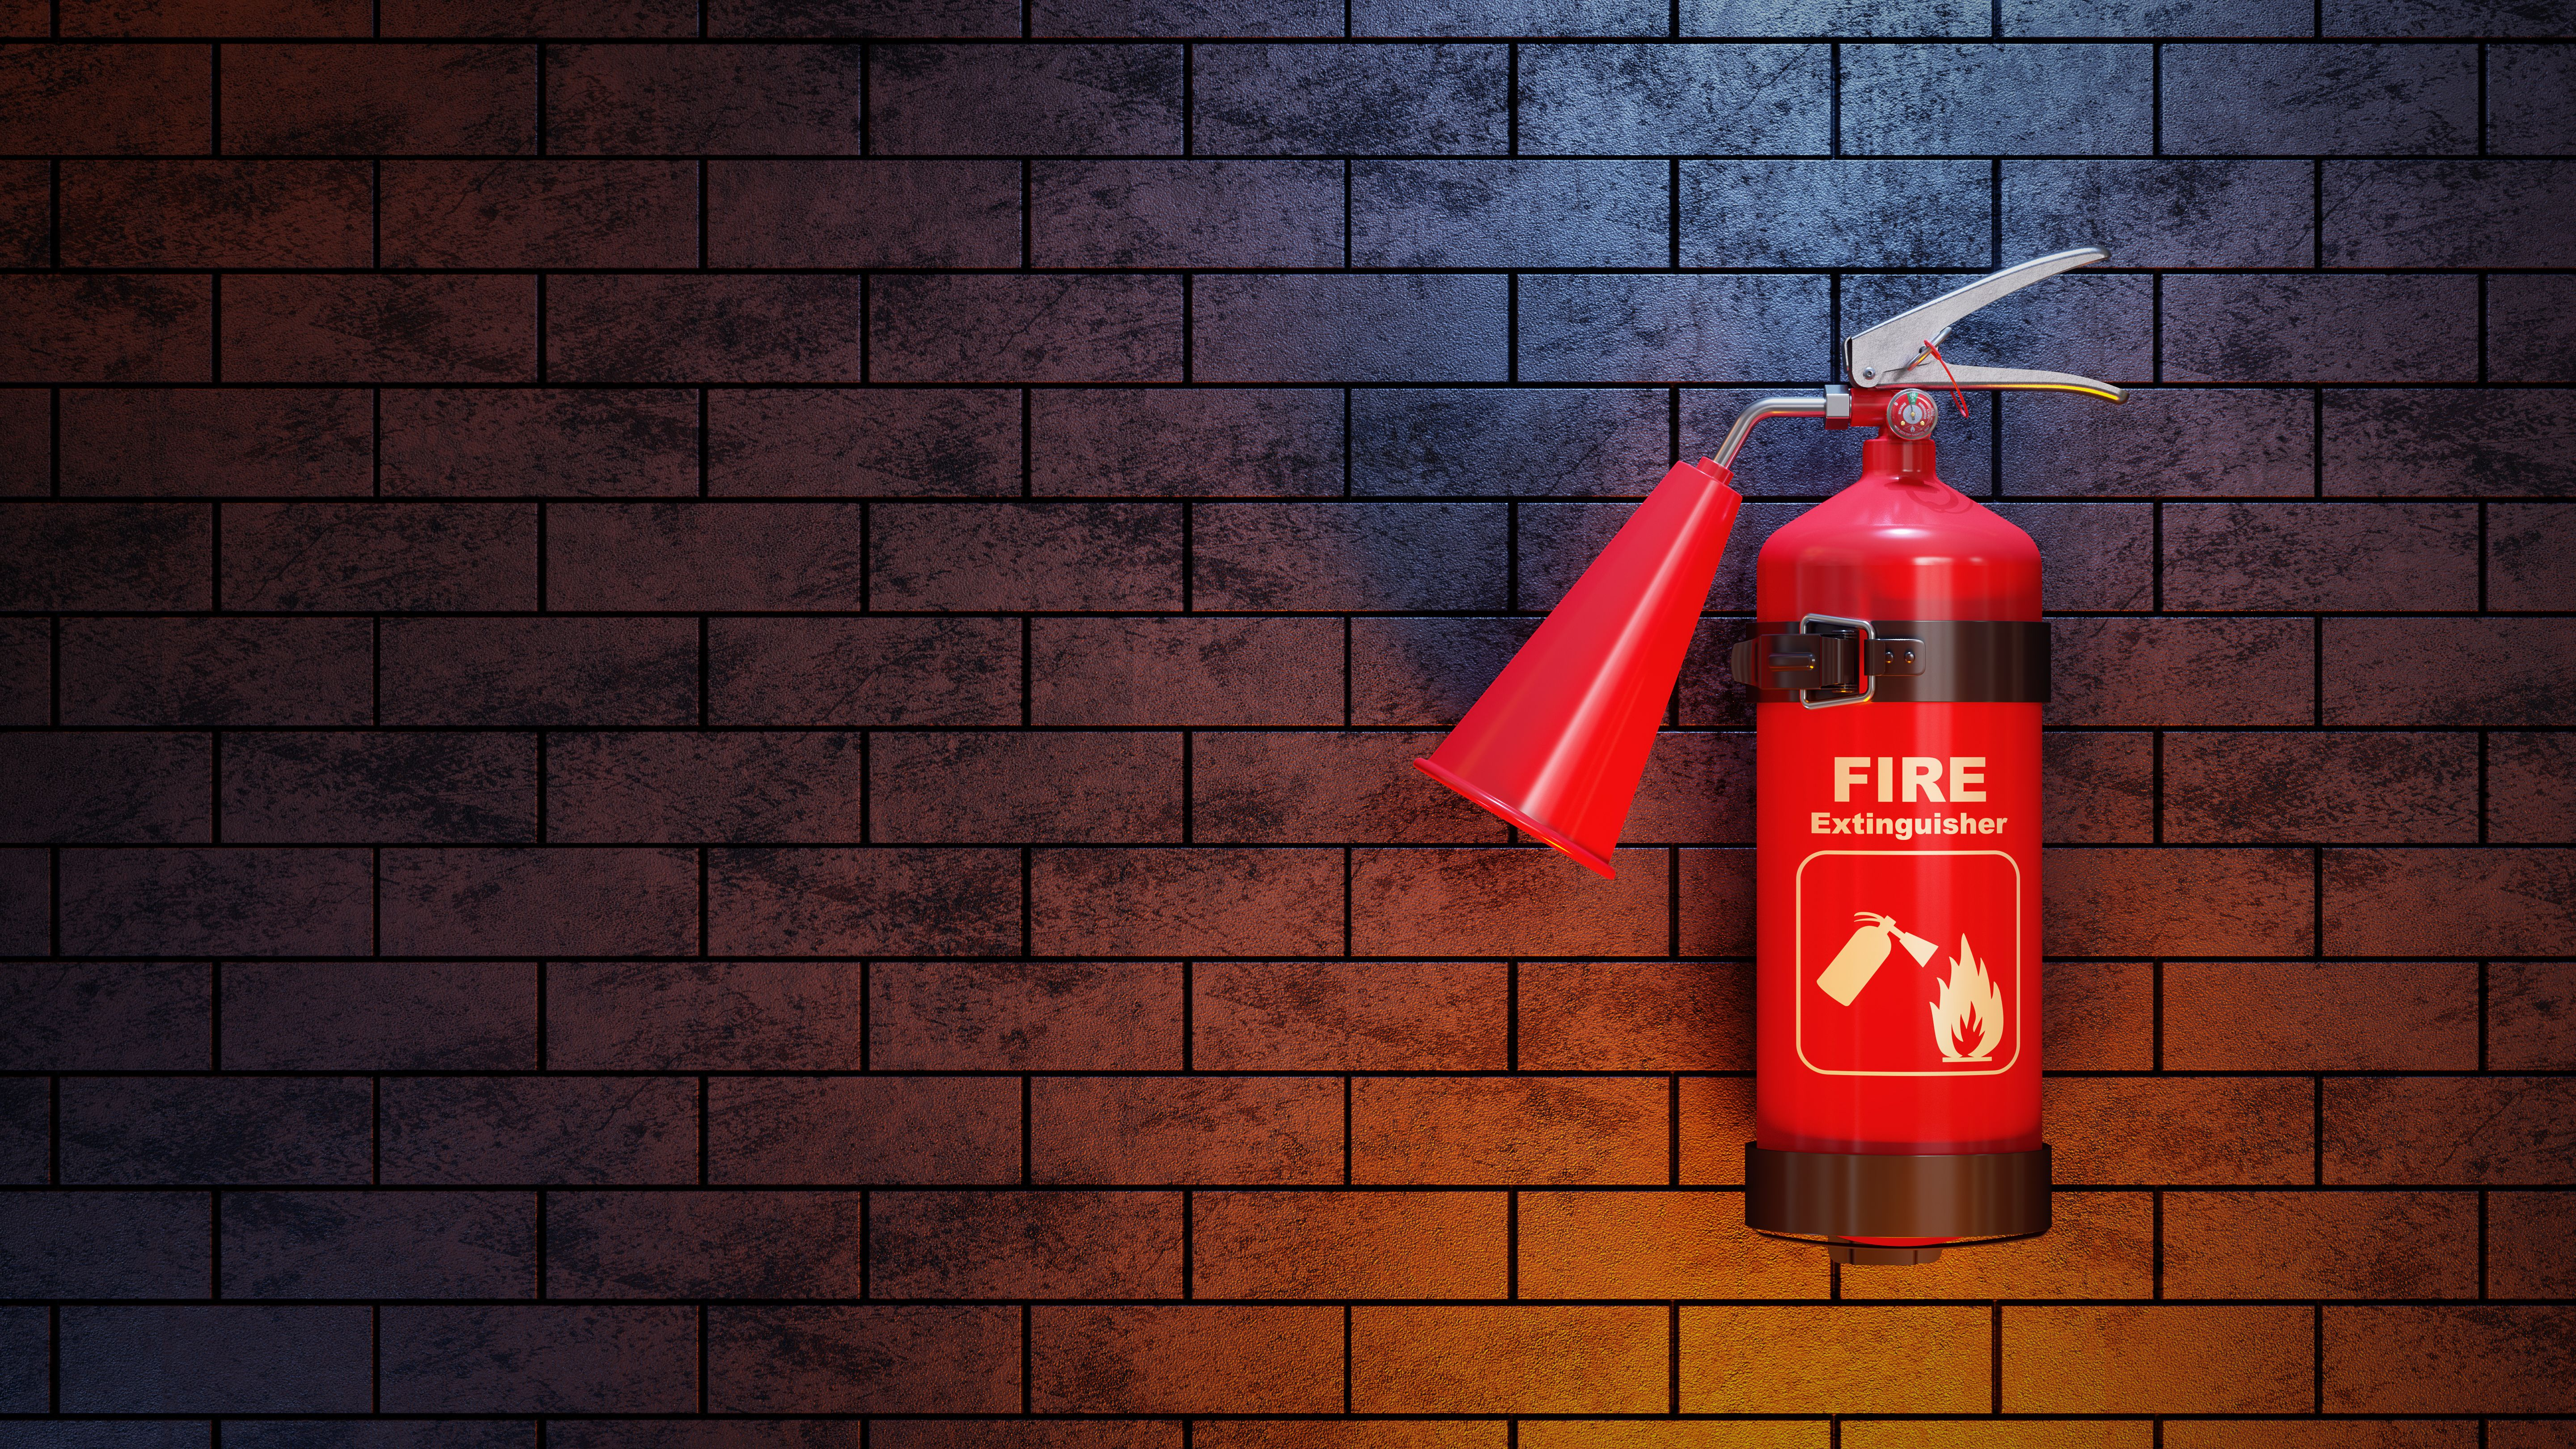 How to Dispose of Old Fire Extinguishers (With images